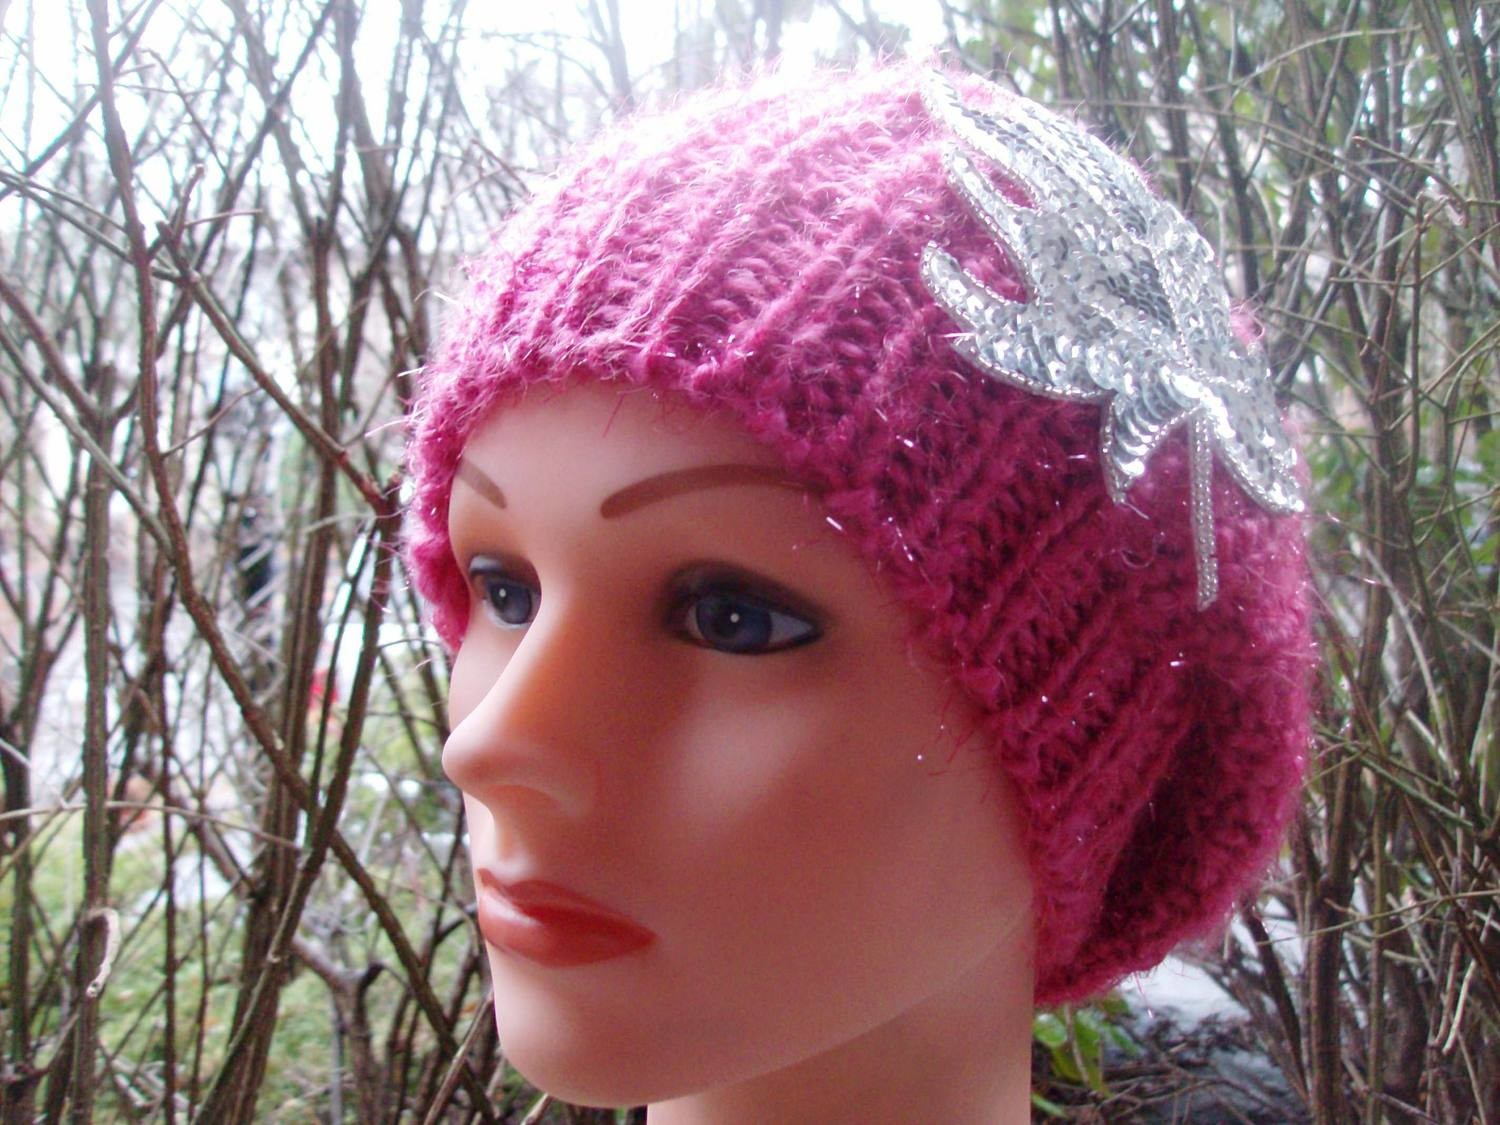 Chic beret shimmery pink